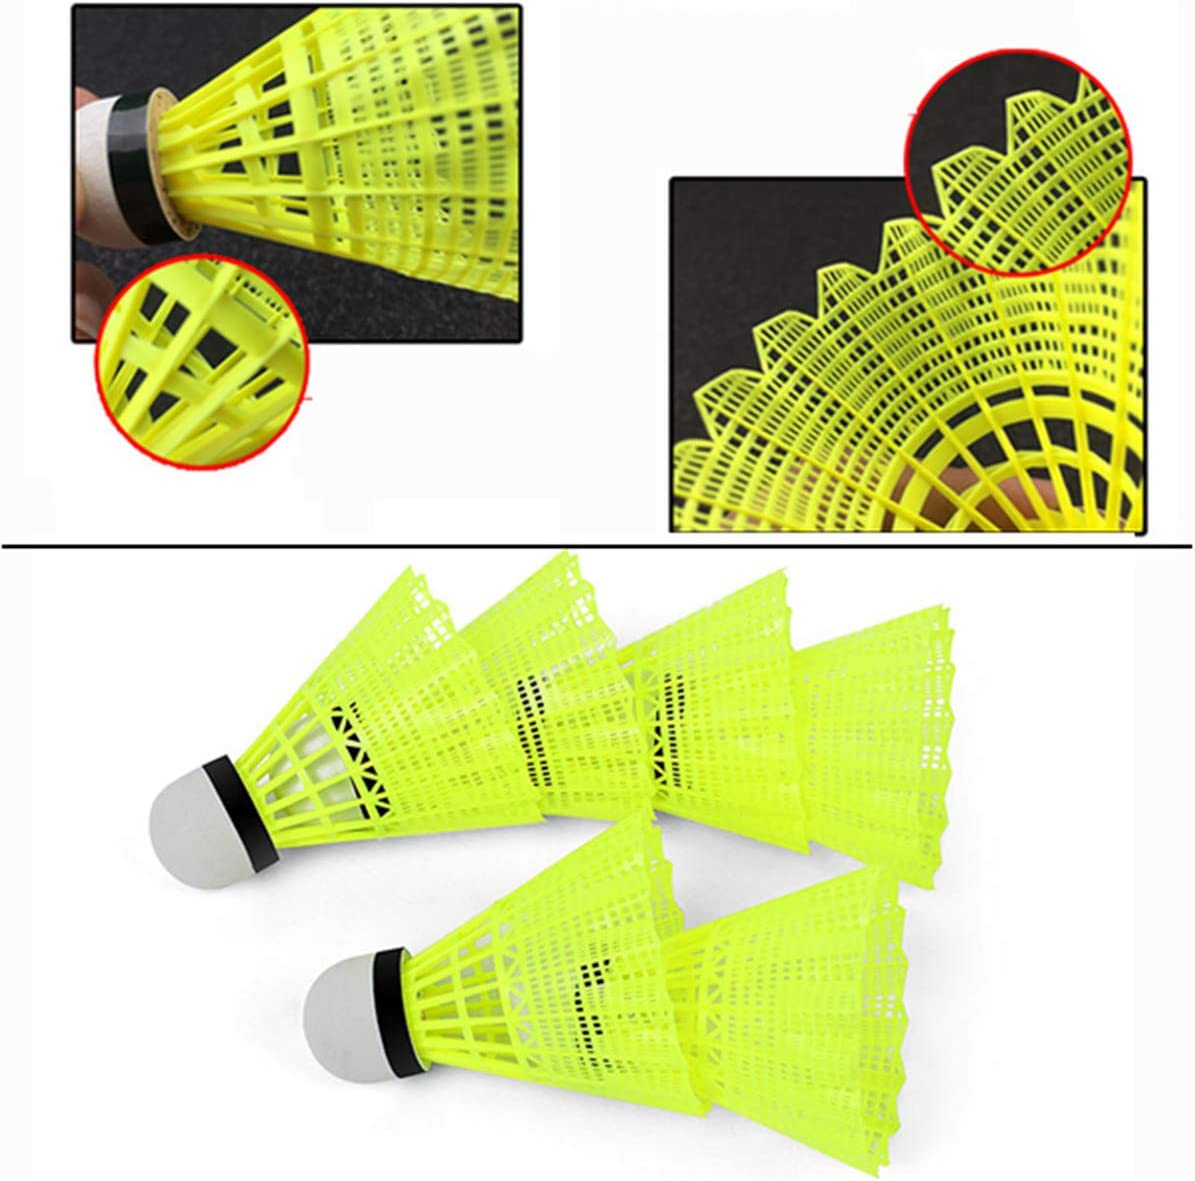 N/Y 12-Pack Nylon Feather Shuttlecocks, High Speed Badminton Birdies Balls with Great Stability and Durability for Indoor Outdoor Sports Training Sports Shuttlecock Birdies (Yellow) : Sports & Outdoors